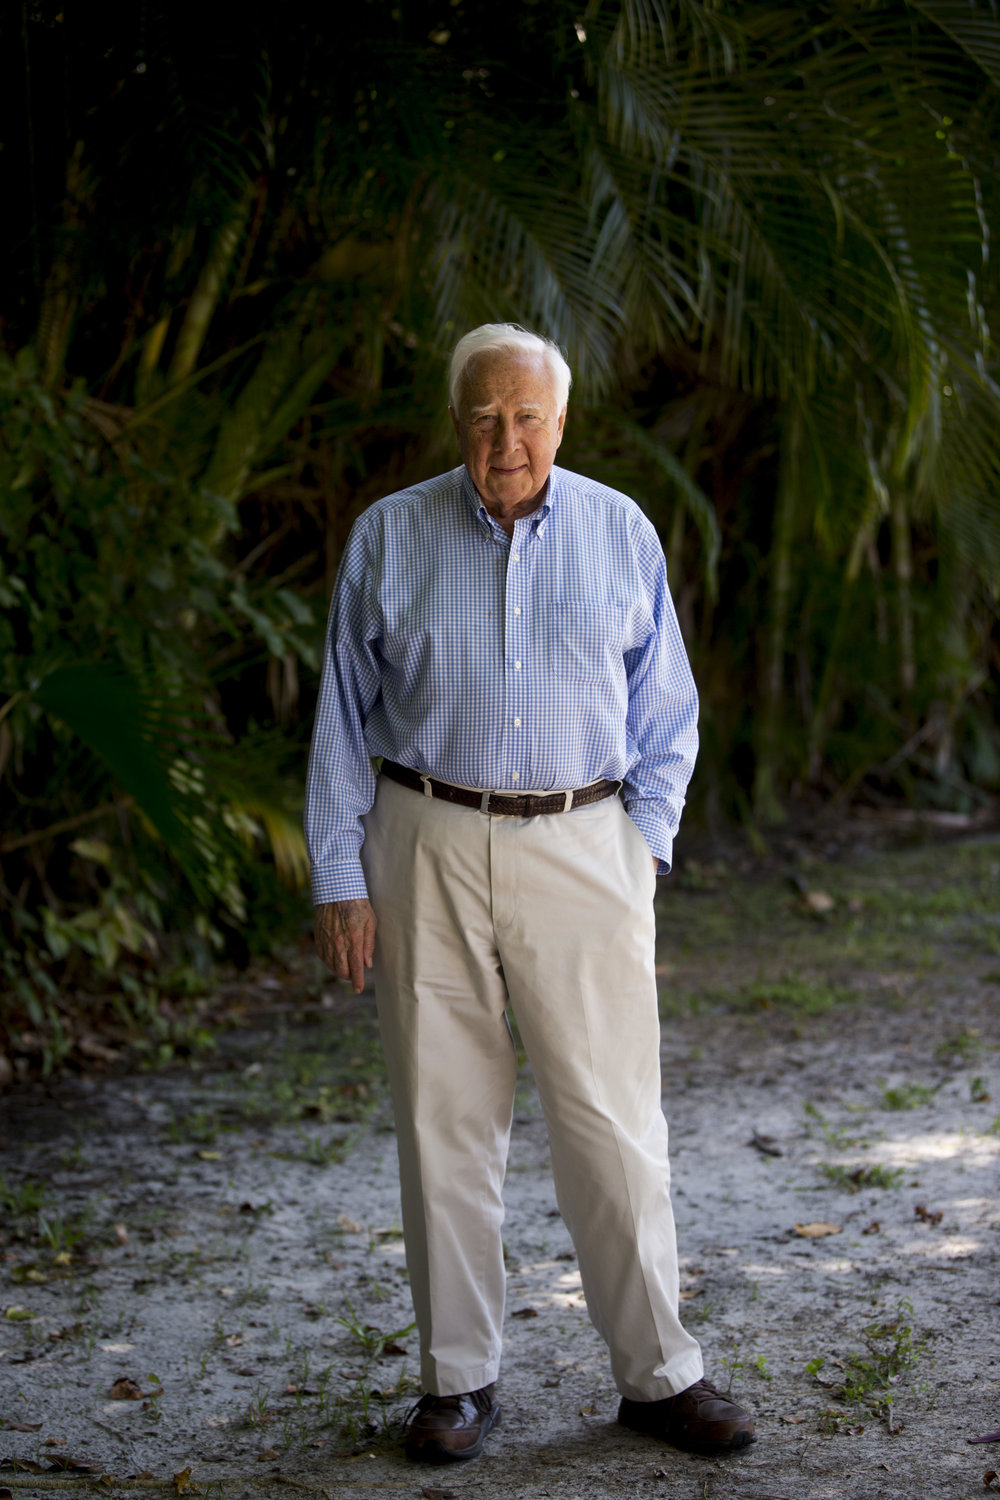 Pulitzer prize winning author David McCullough made a special guest appearance at the Naples Jazz Society's 21st annual celebration Saturday, March 11, 2017 in Naples.